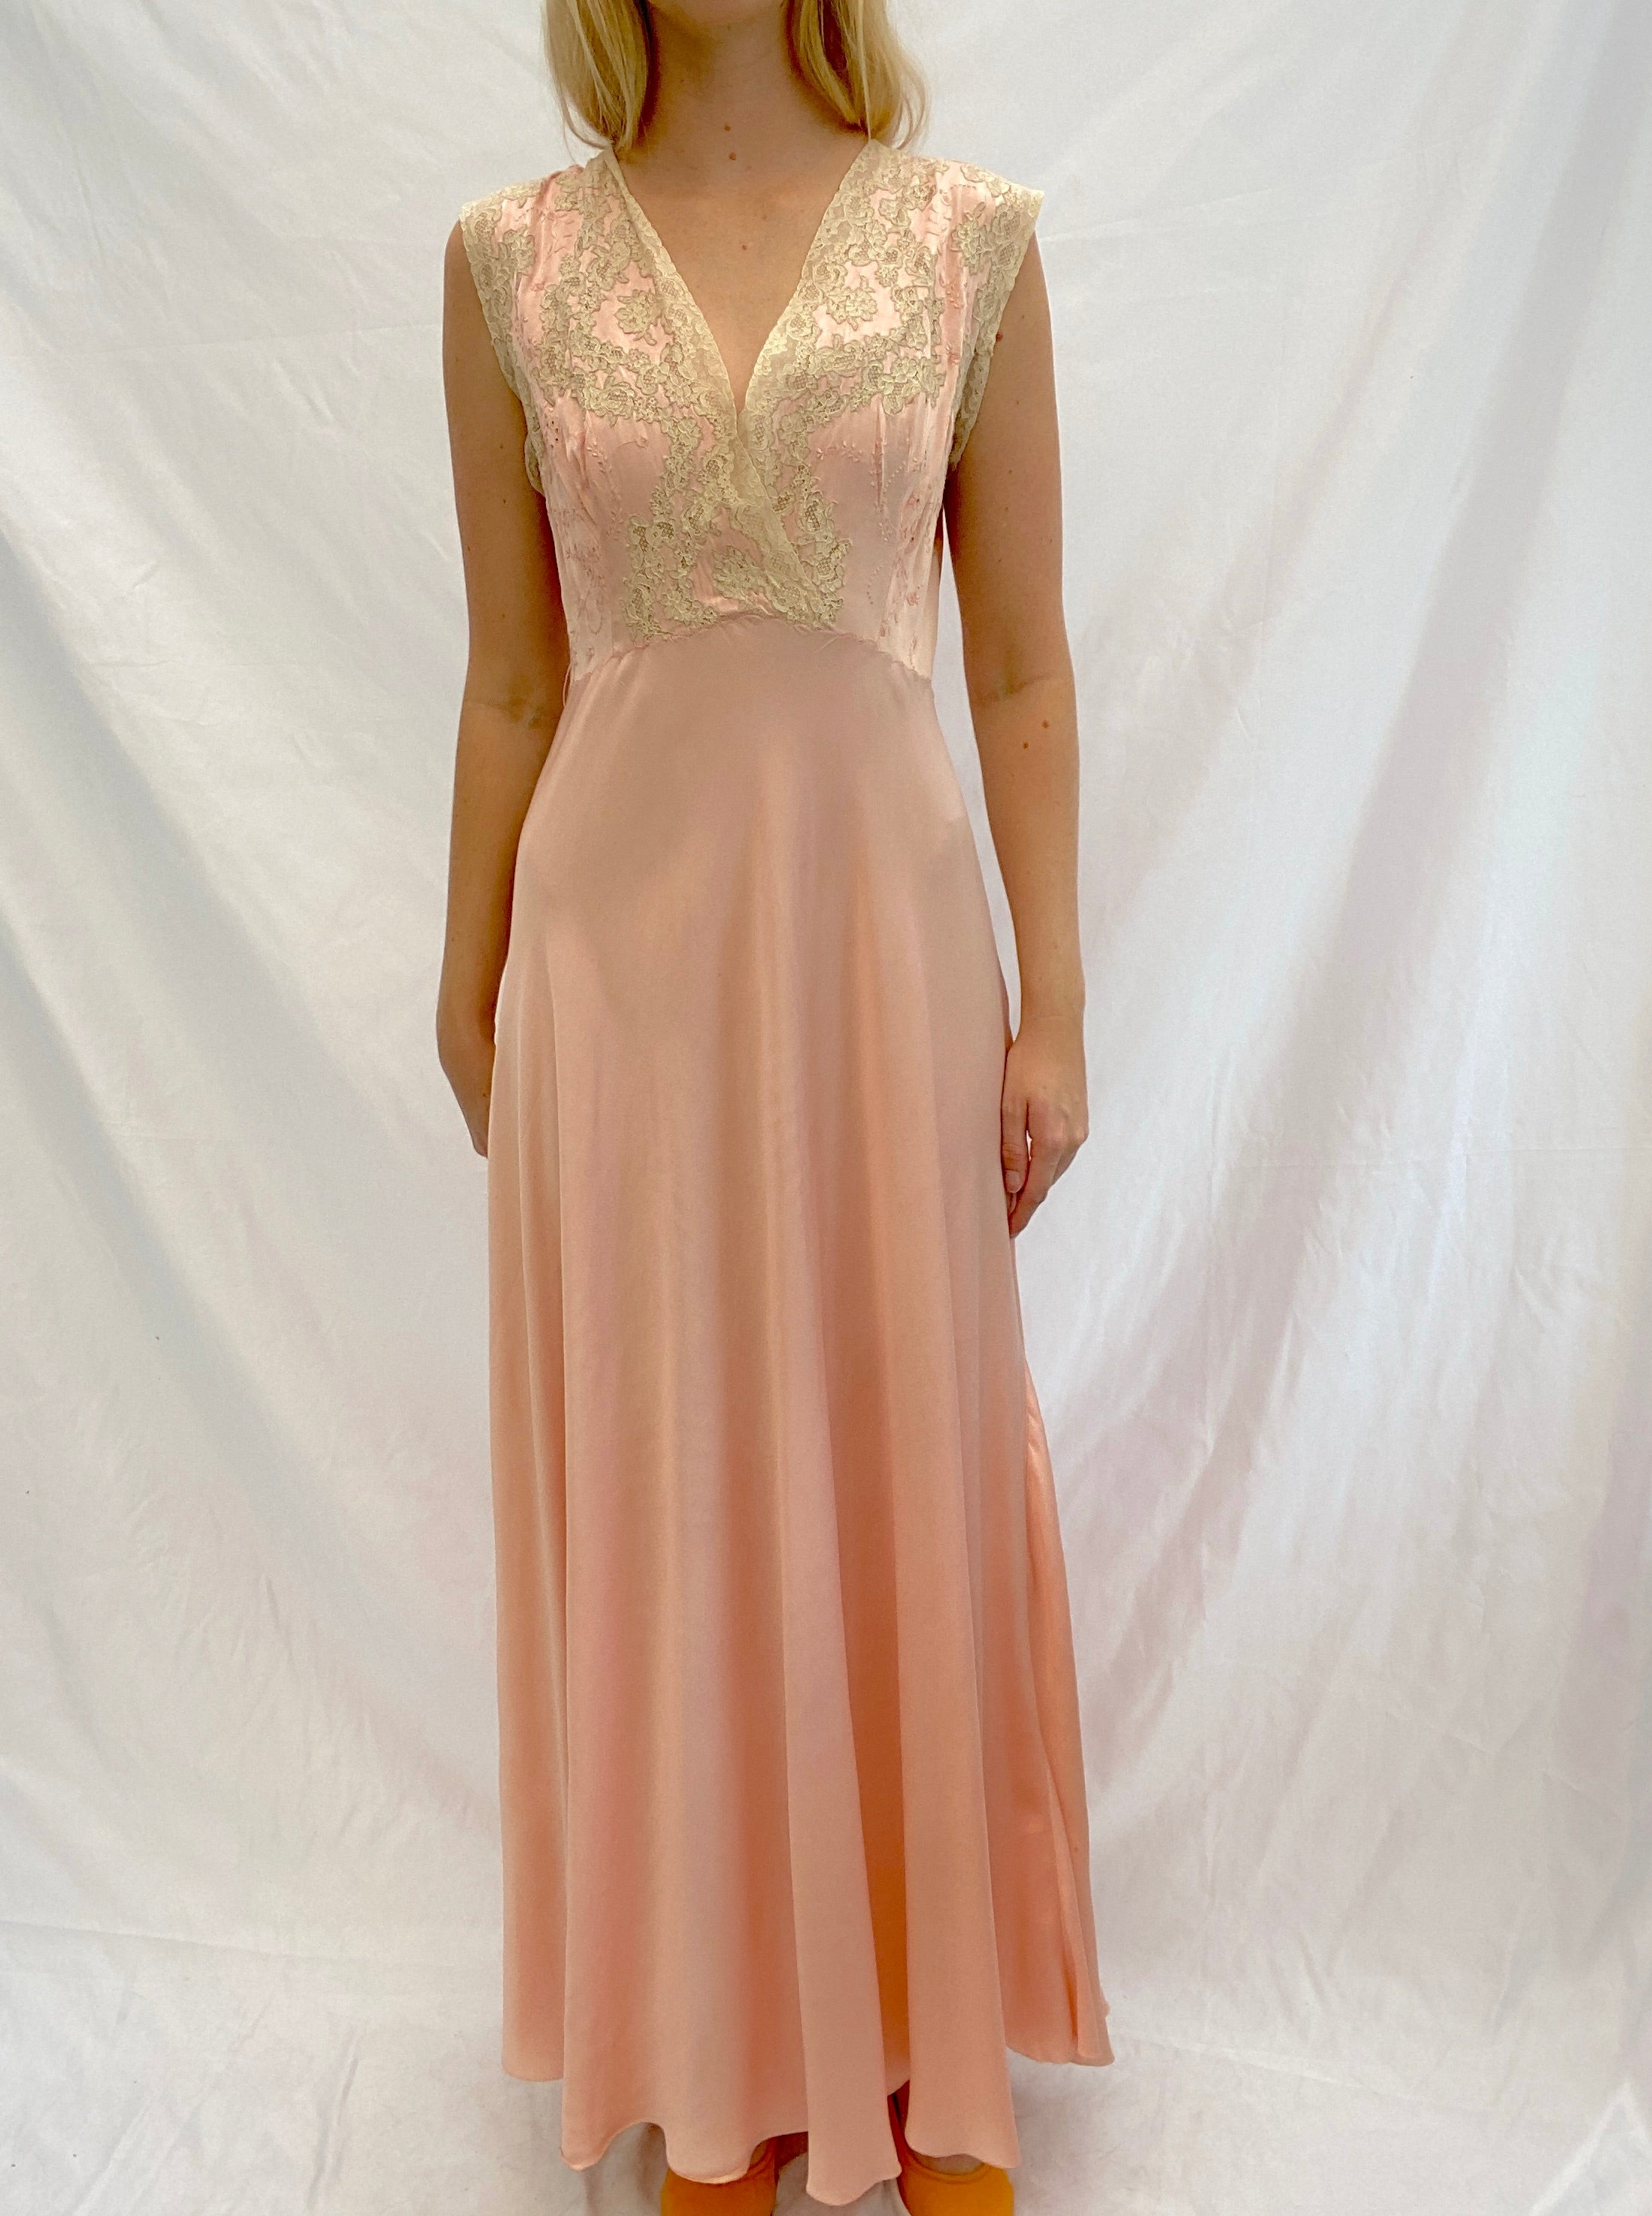 Pink Silk Slip Dress with Beautiful Cream Lace and Embroidery